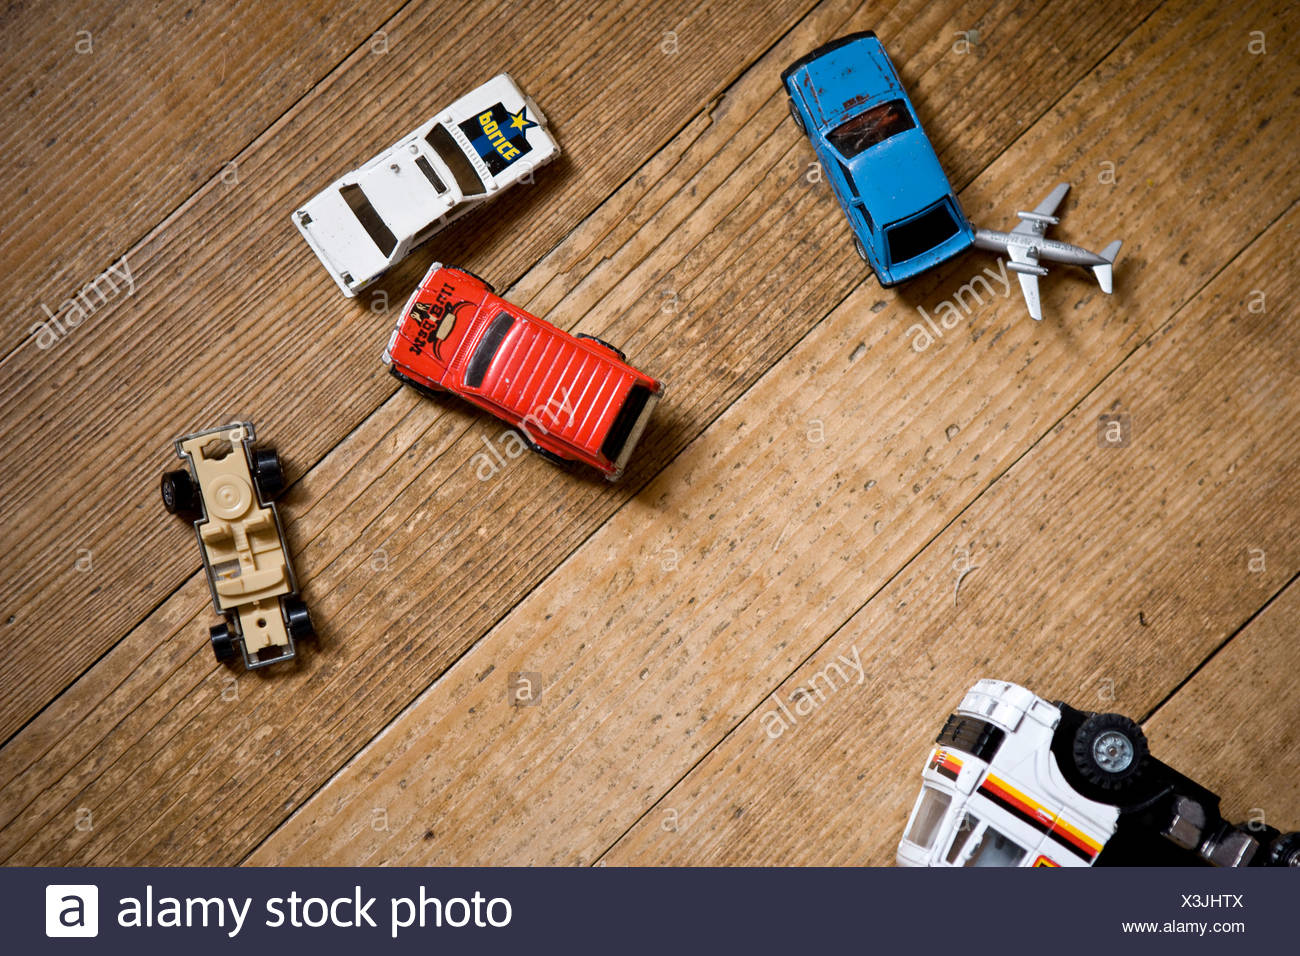 Car Toys Federal Way: Inside Of Car From Above Stock Photos & Inside Of Car From